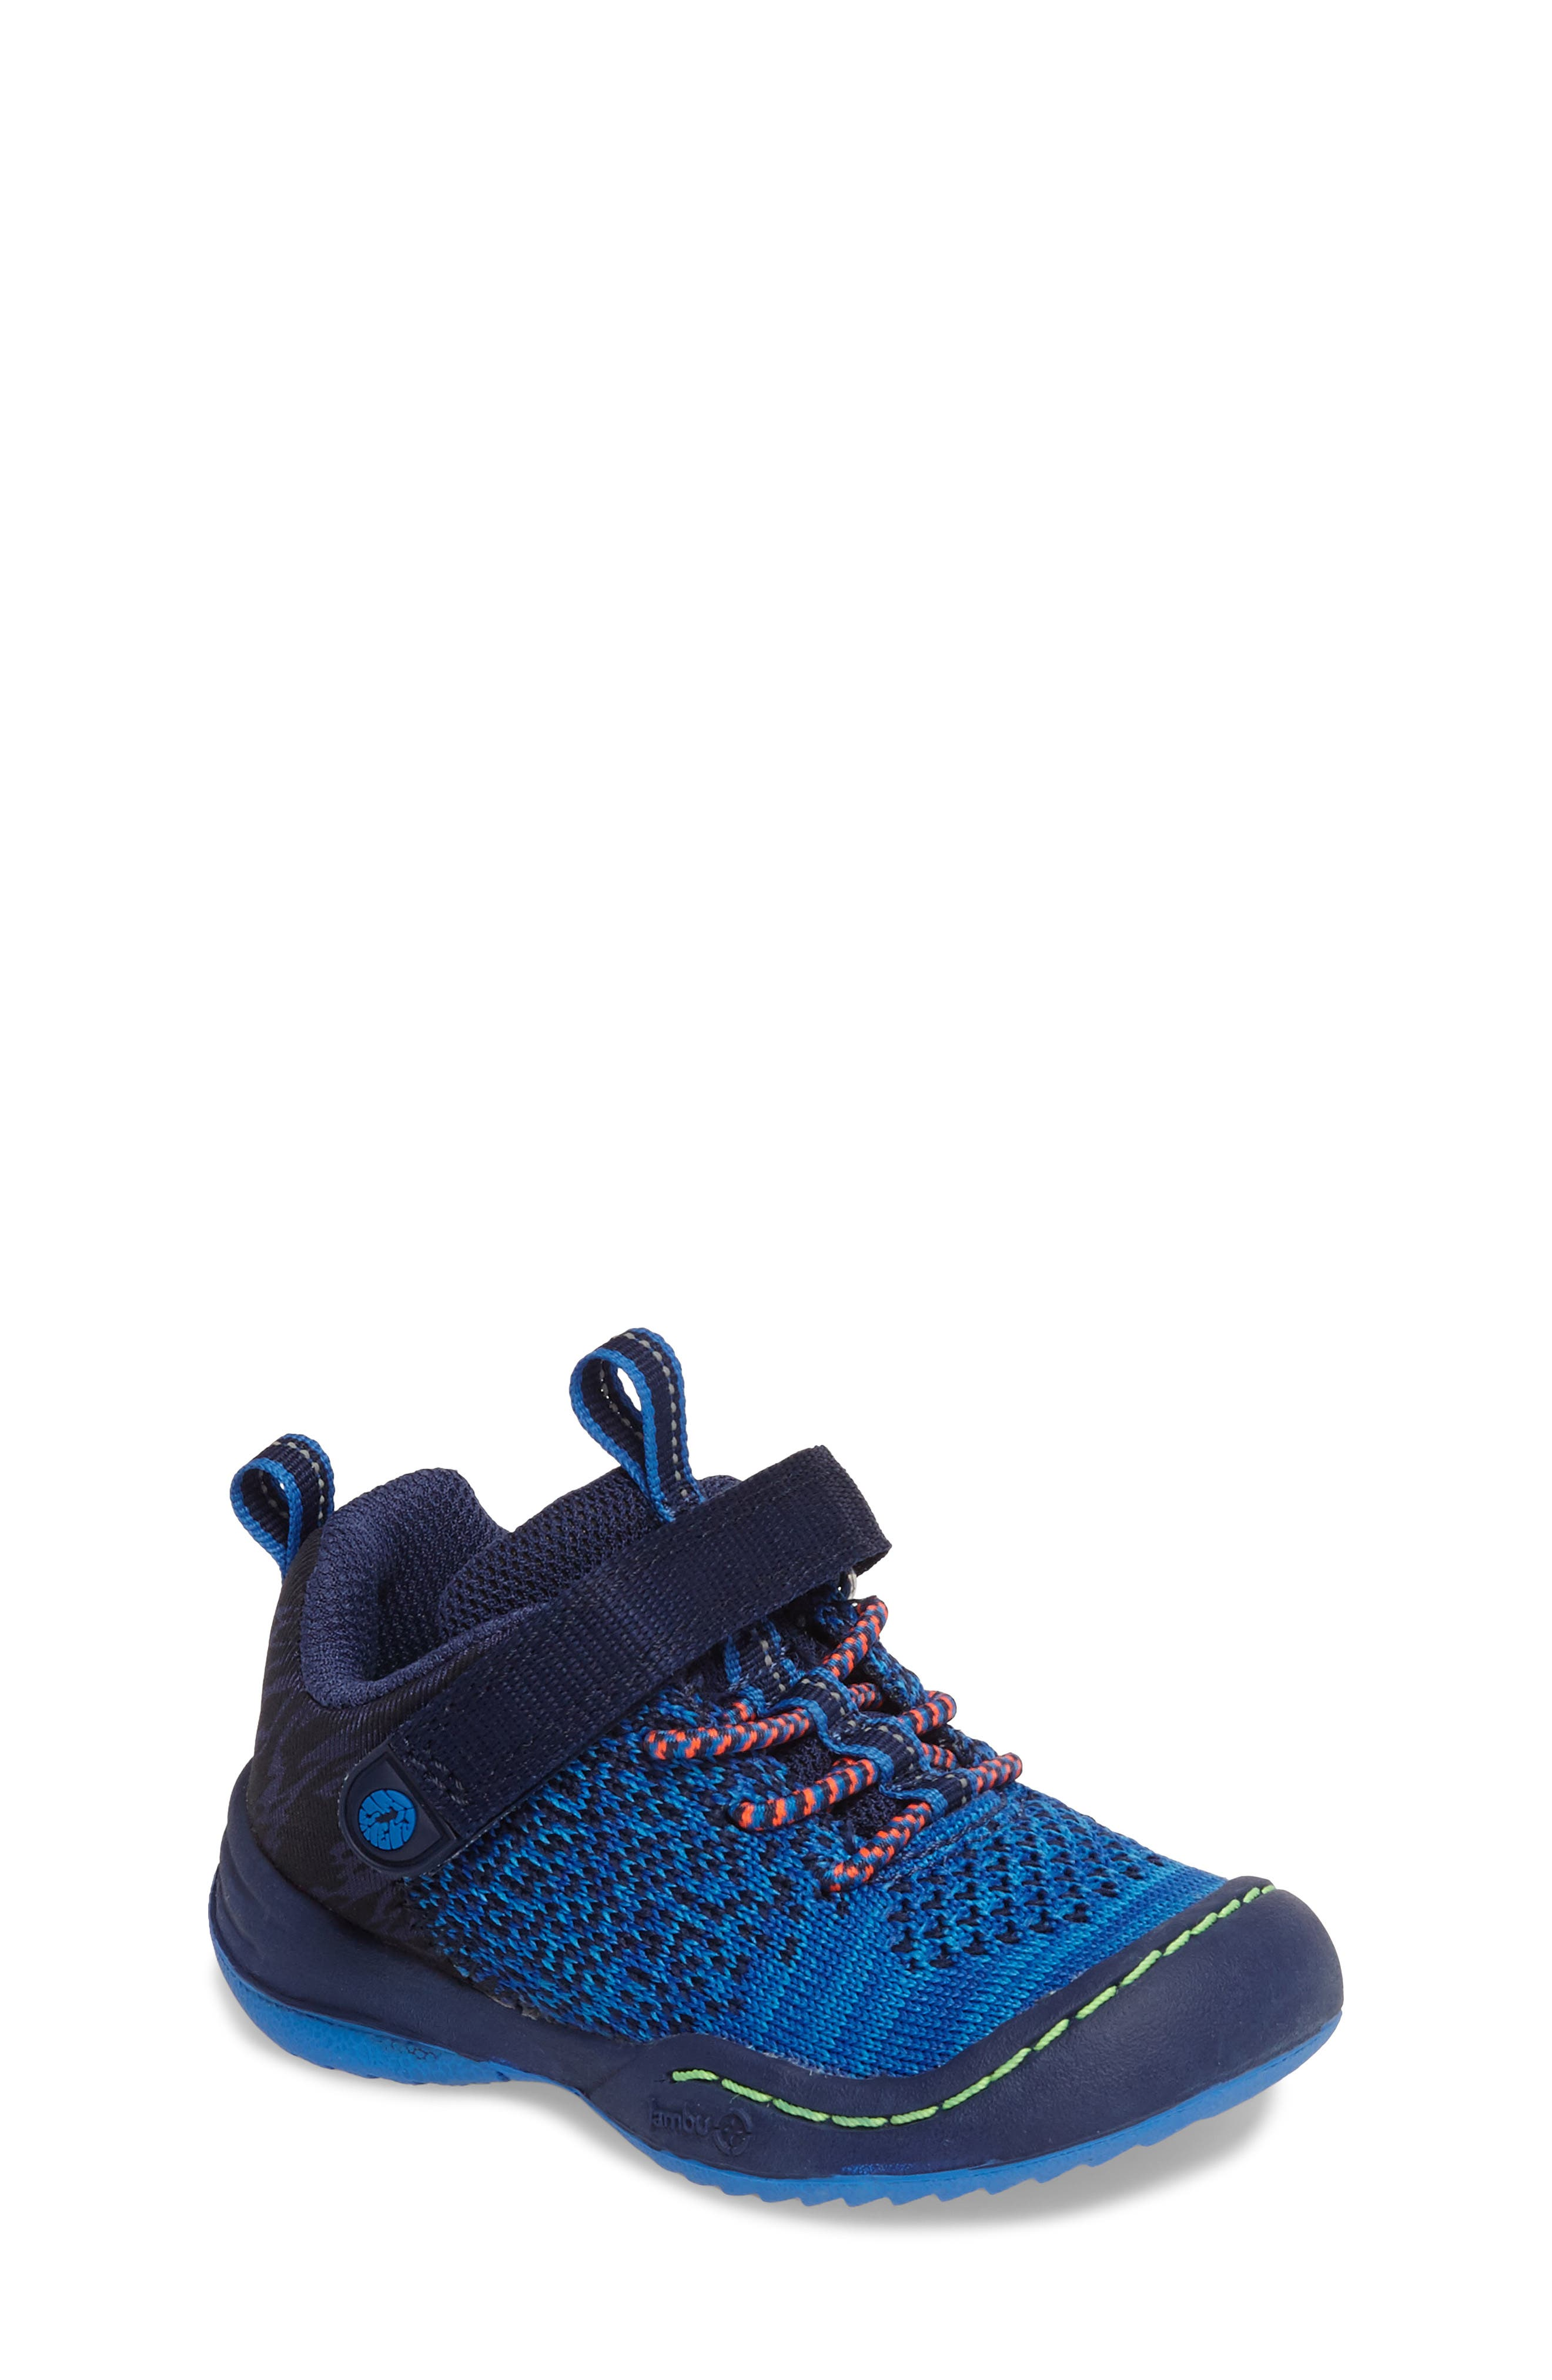 Jambu Talon Knit Sneaker (Toddler, Little Kid & Big Kid)